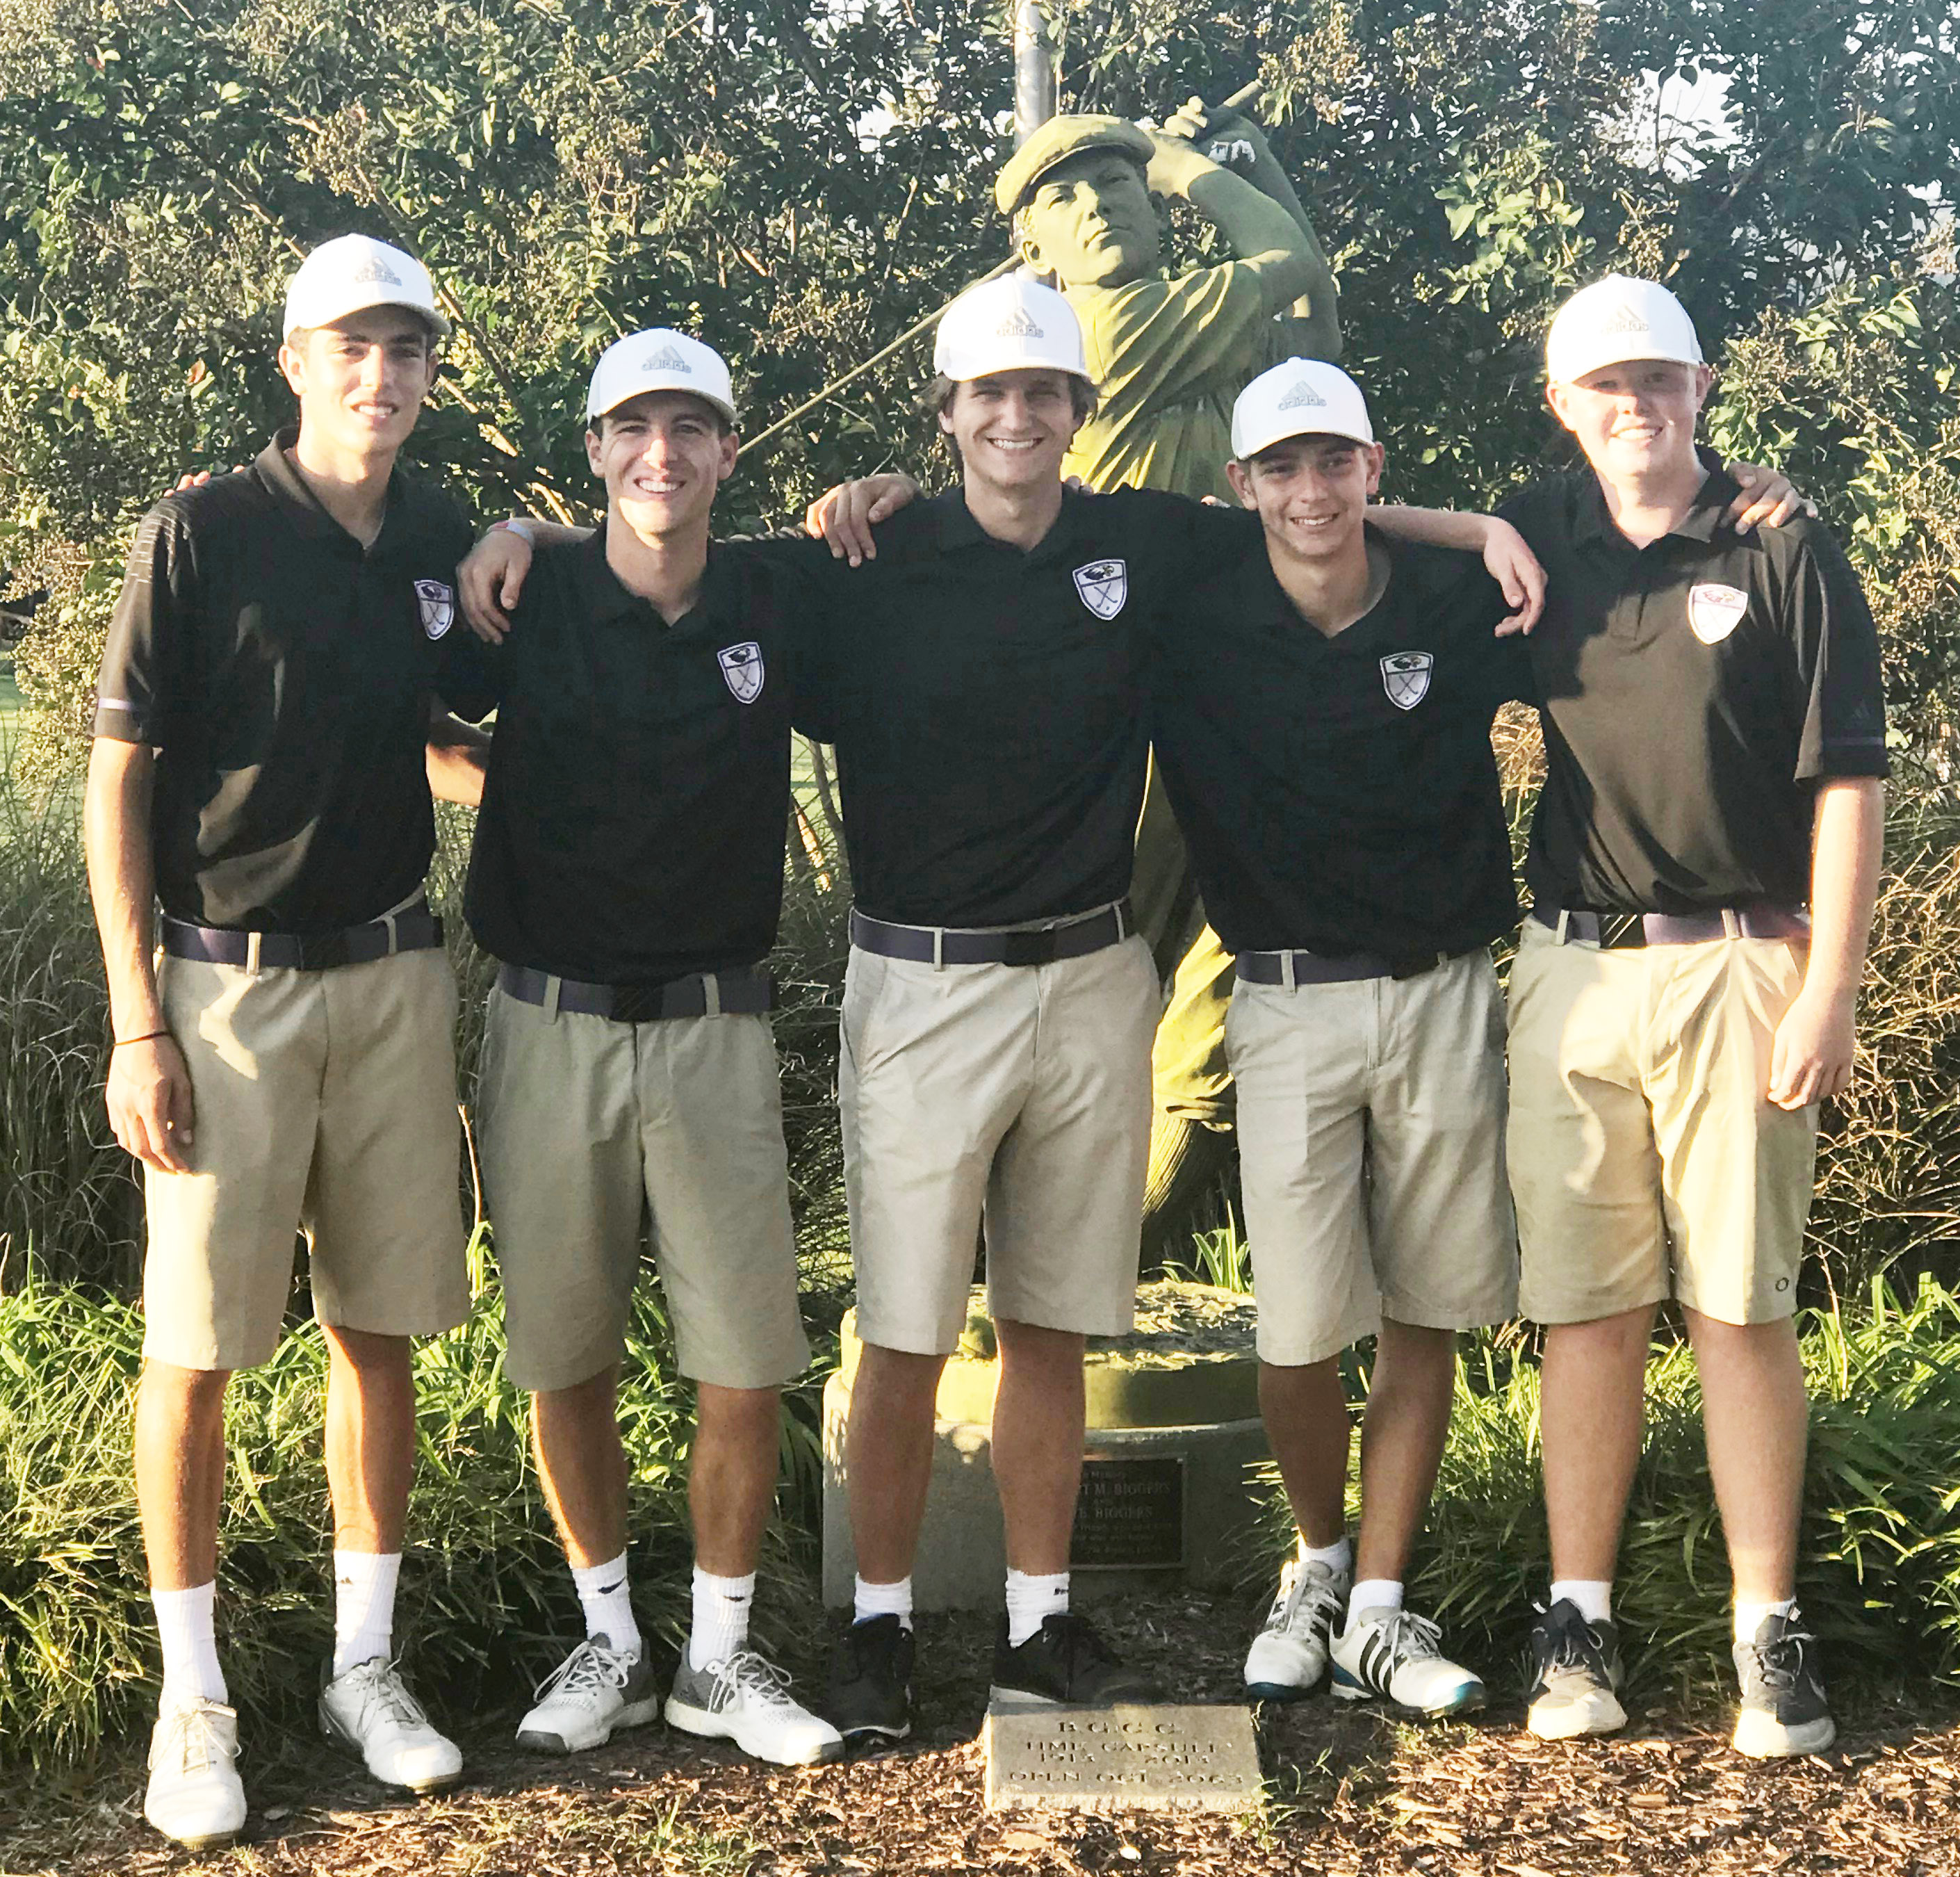 CHS boys' golf players, from left, sophomore Kameron Smith, seniors Layton Hord, Myles Murrell and Casey Hardin and sophomore Colin Harris, pose for a photo at the KHSAA tournament.